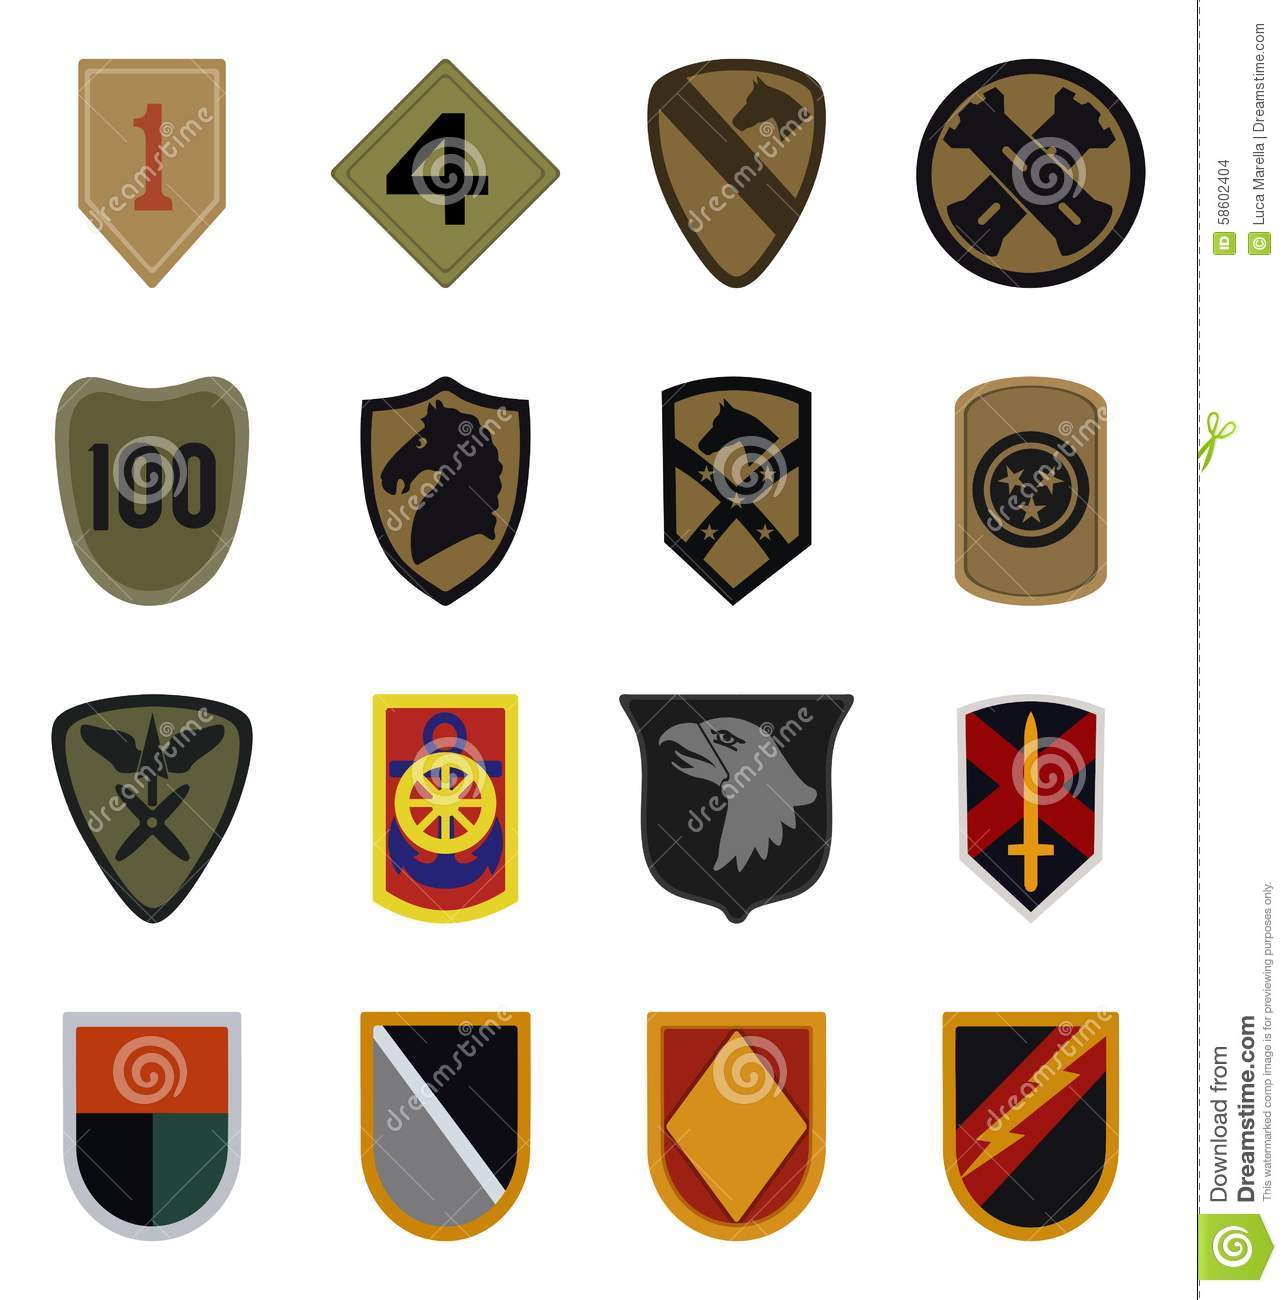 Army unit patches clipart png transparent download Collection of 14 free Patch clipart military aztec clipart vintage ... png transparent download